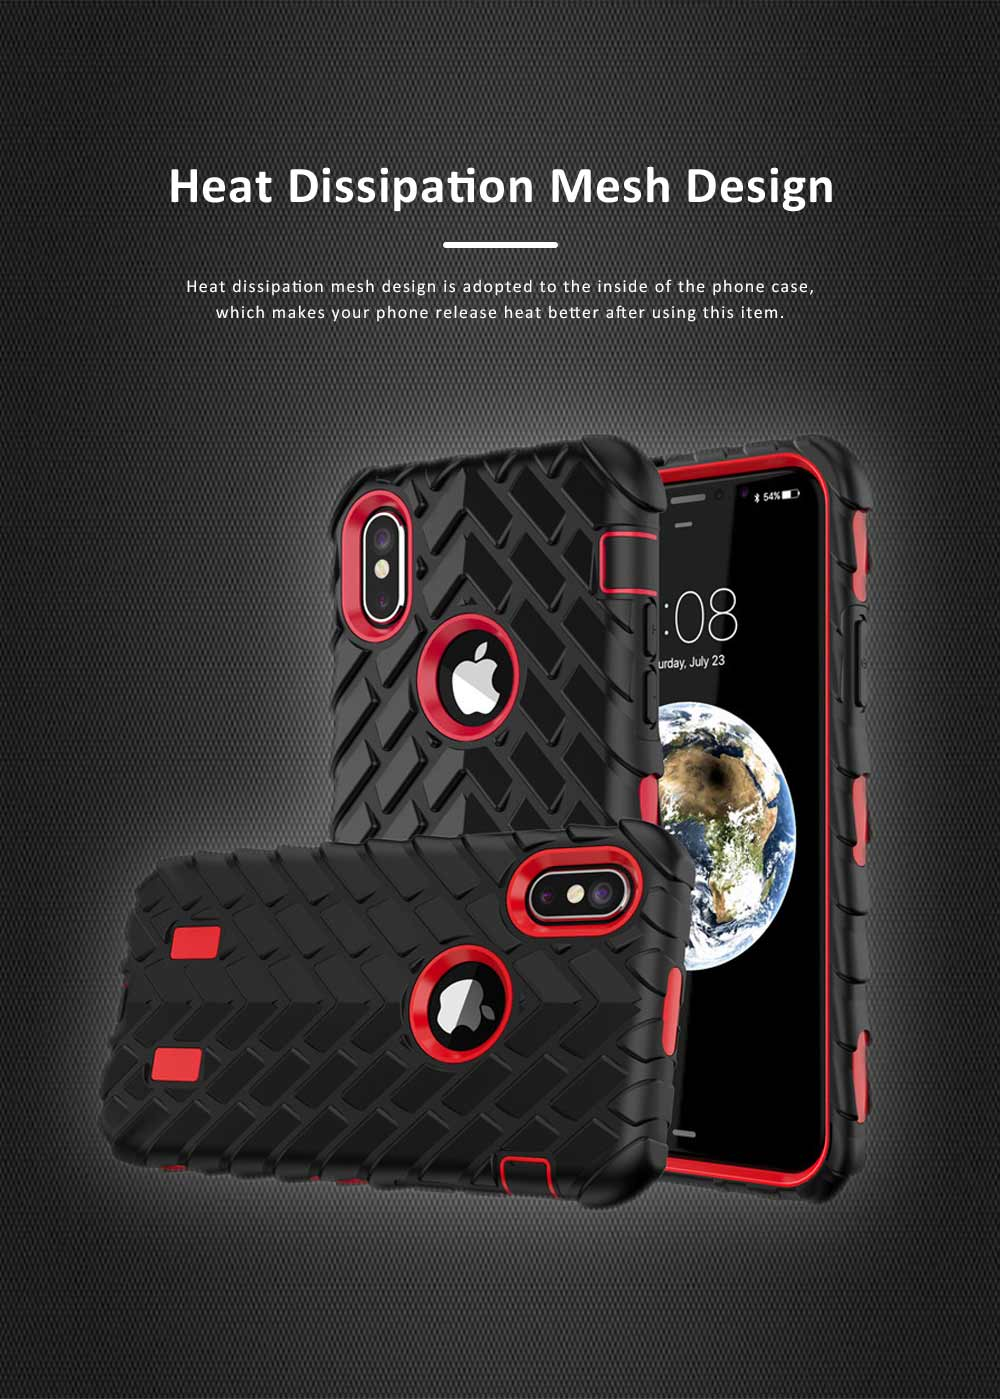 Solid Breaking-proof Huawei Armor Model Phone Case, Minimalist TPU PC Edges Hemming Phone Cover for Huawei Honor 2